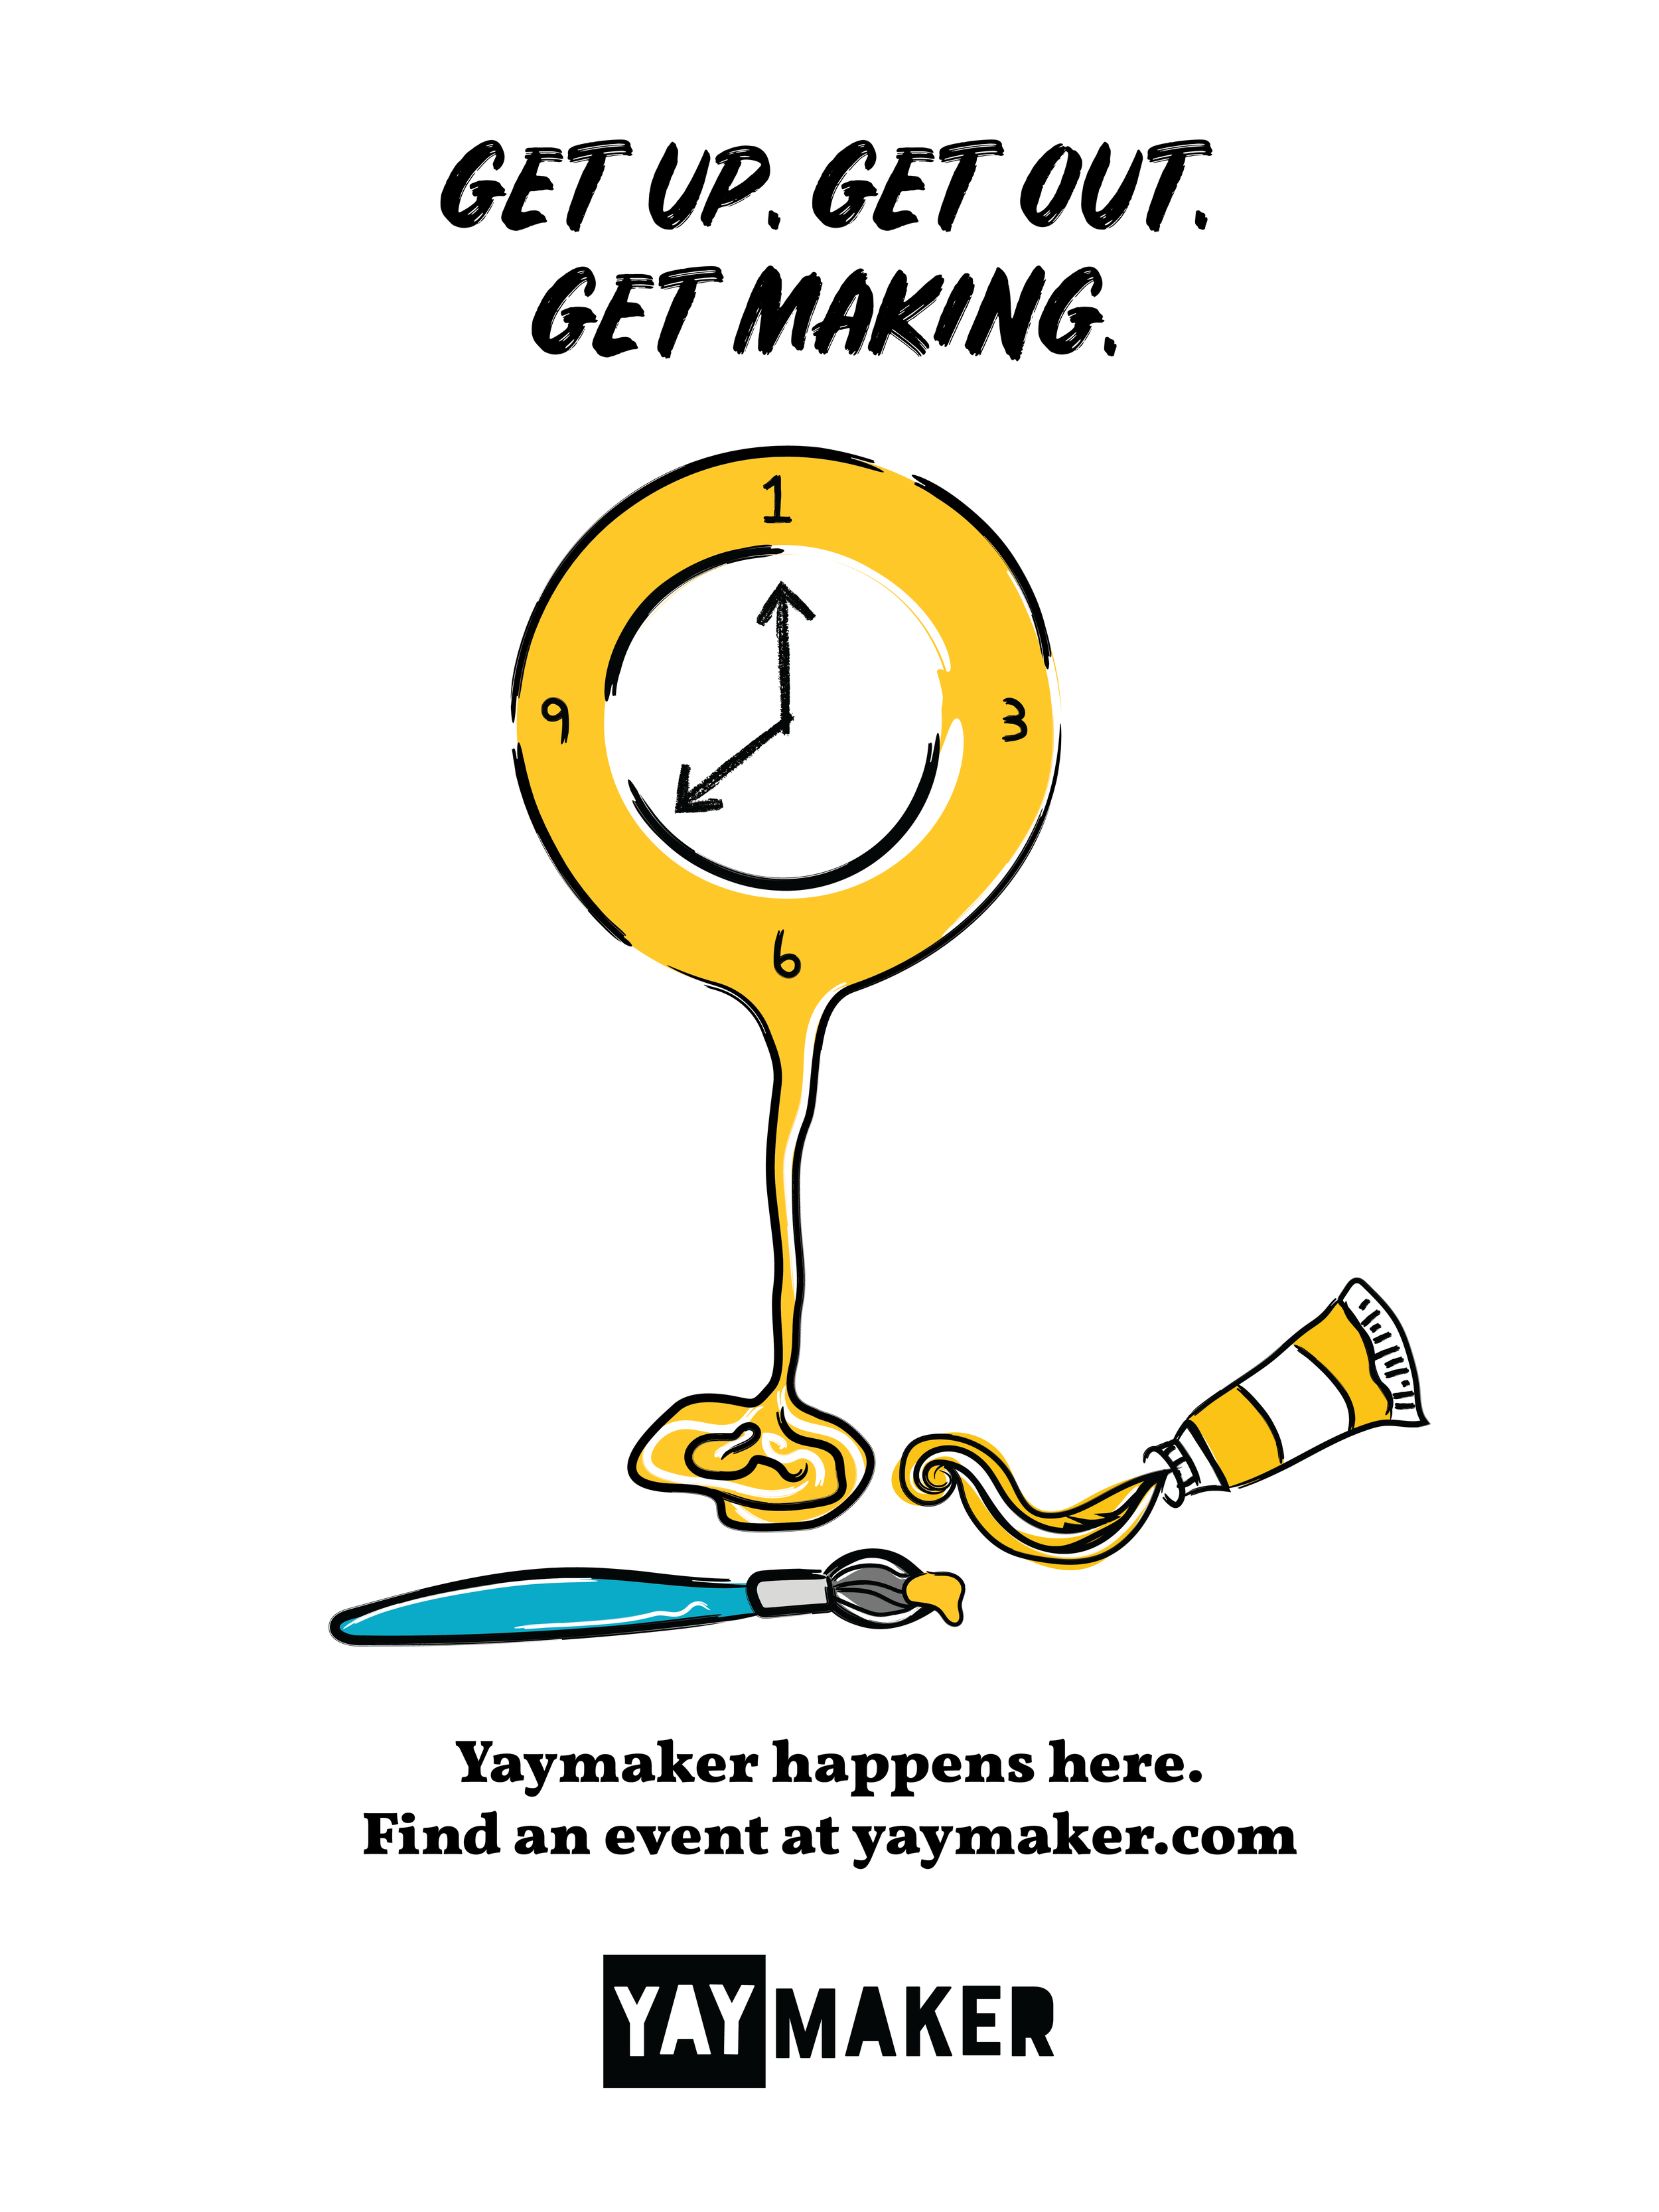 Yaymaker_Poster_Get Up.png